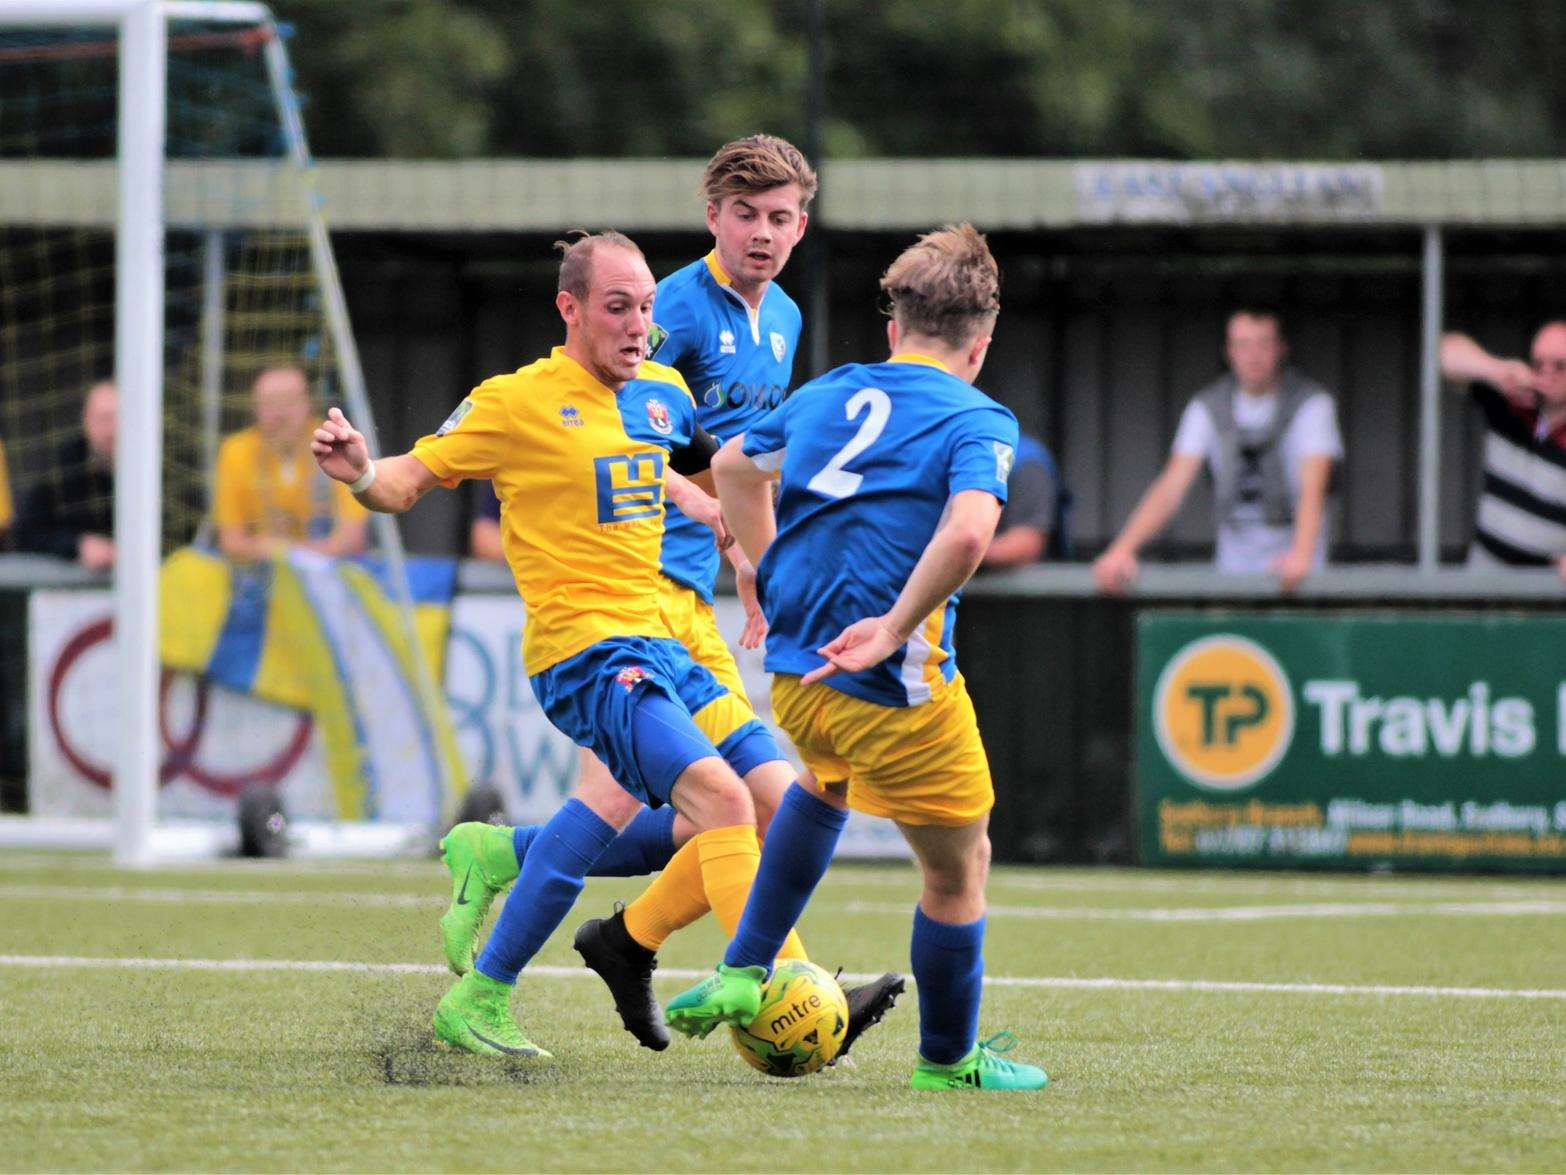 SHOWING THE PASSION: New signing Adam Mills netted for AFC Sudbury in a 1-1 draw as the team target just 'a good season' following demotion disappointment last year